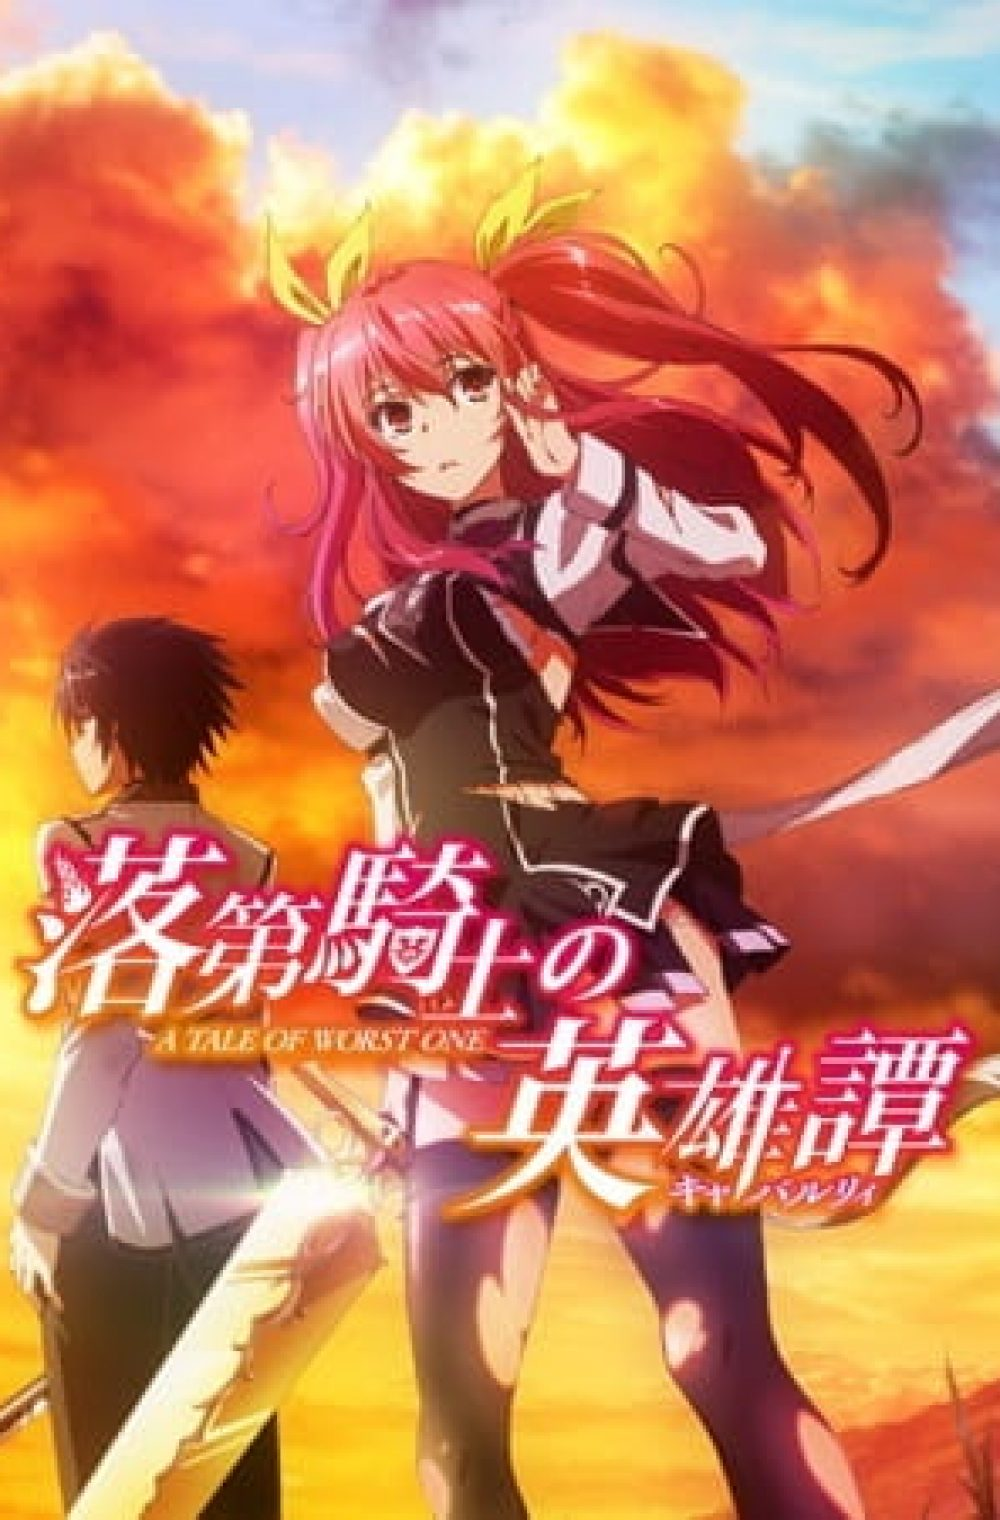 (DUB) Rakudai Kishi no Cavalry (UNCENSORED)